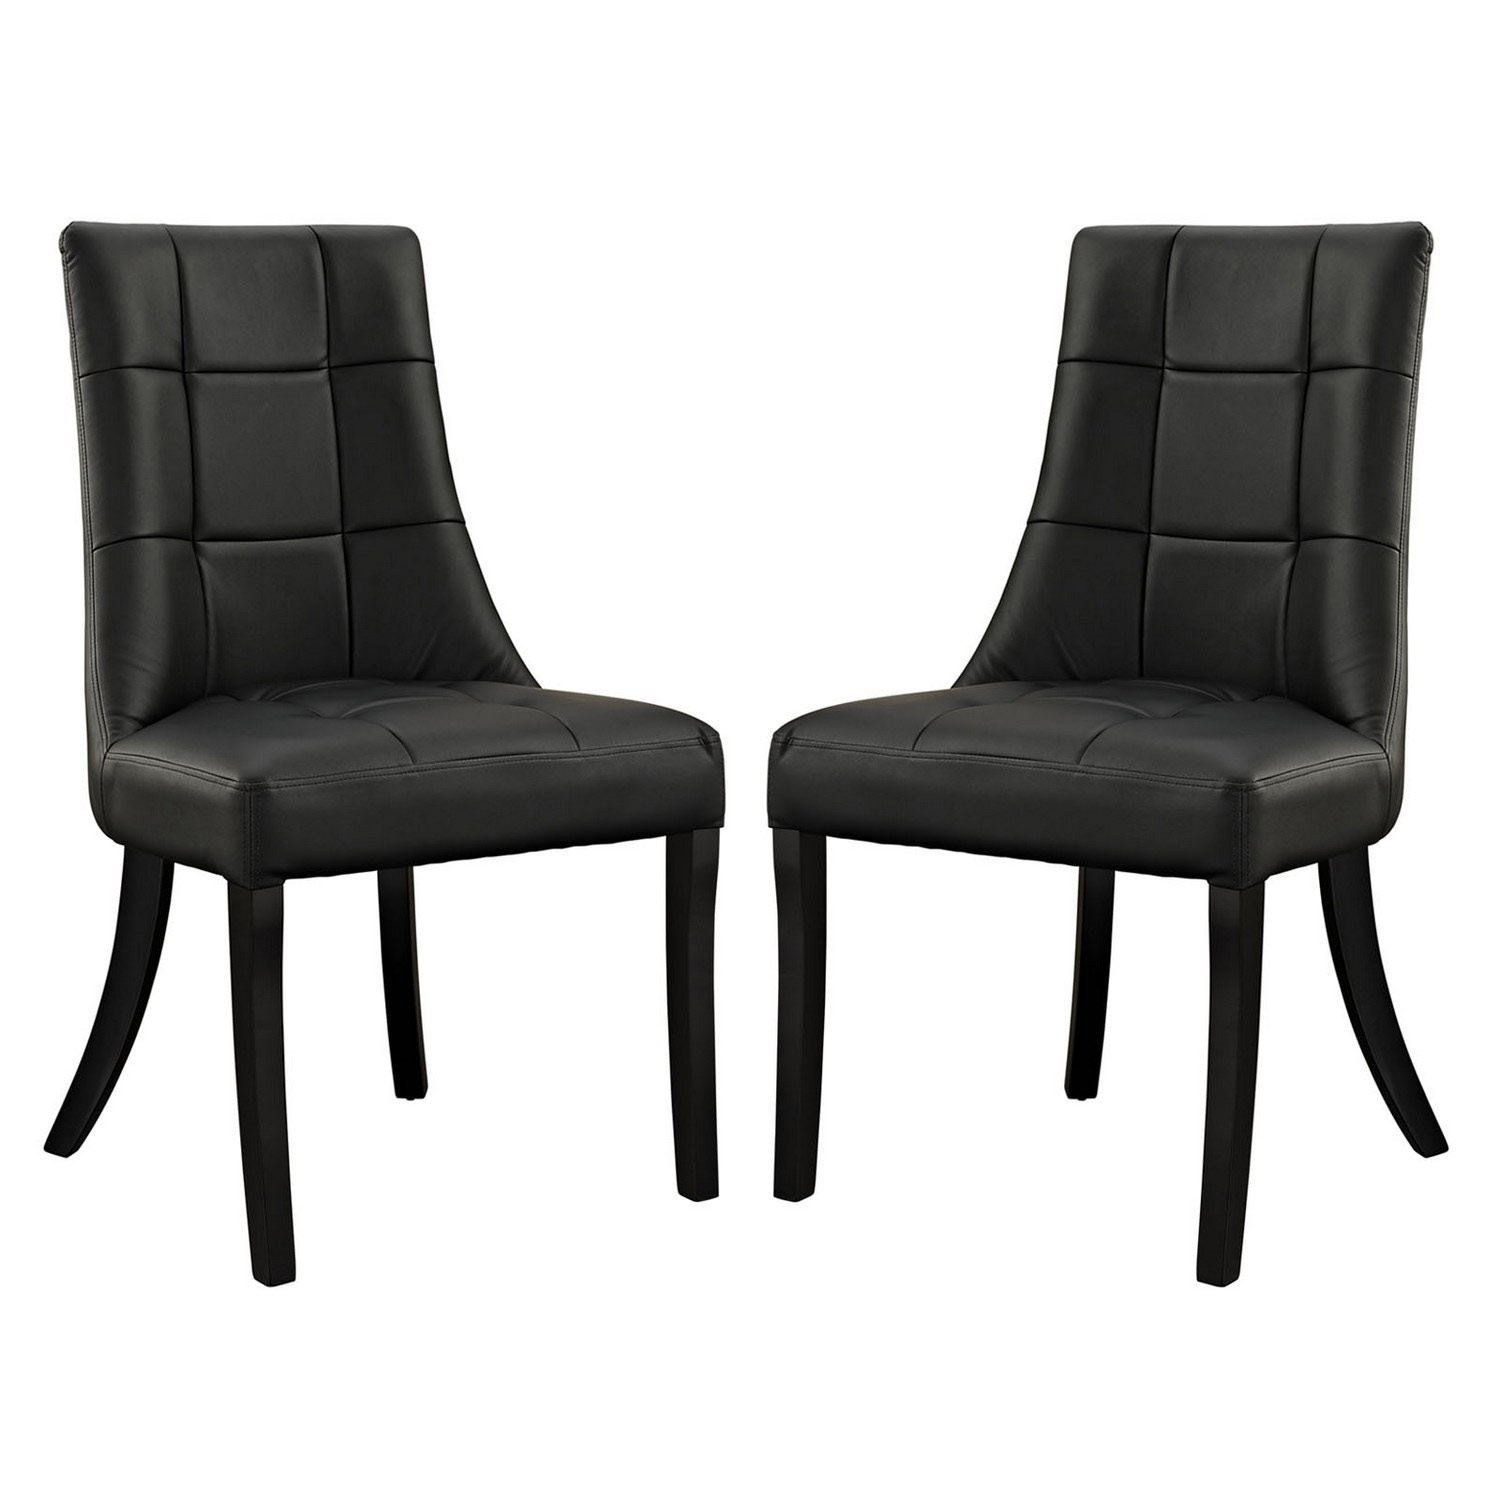 Modway Noblesse Vinyl Dining Chair Set of 2 - Black